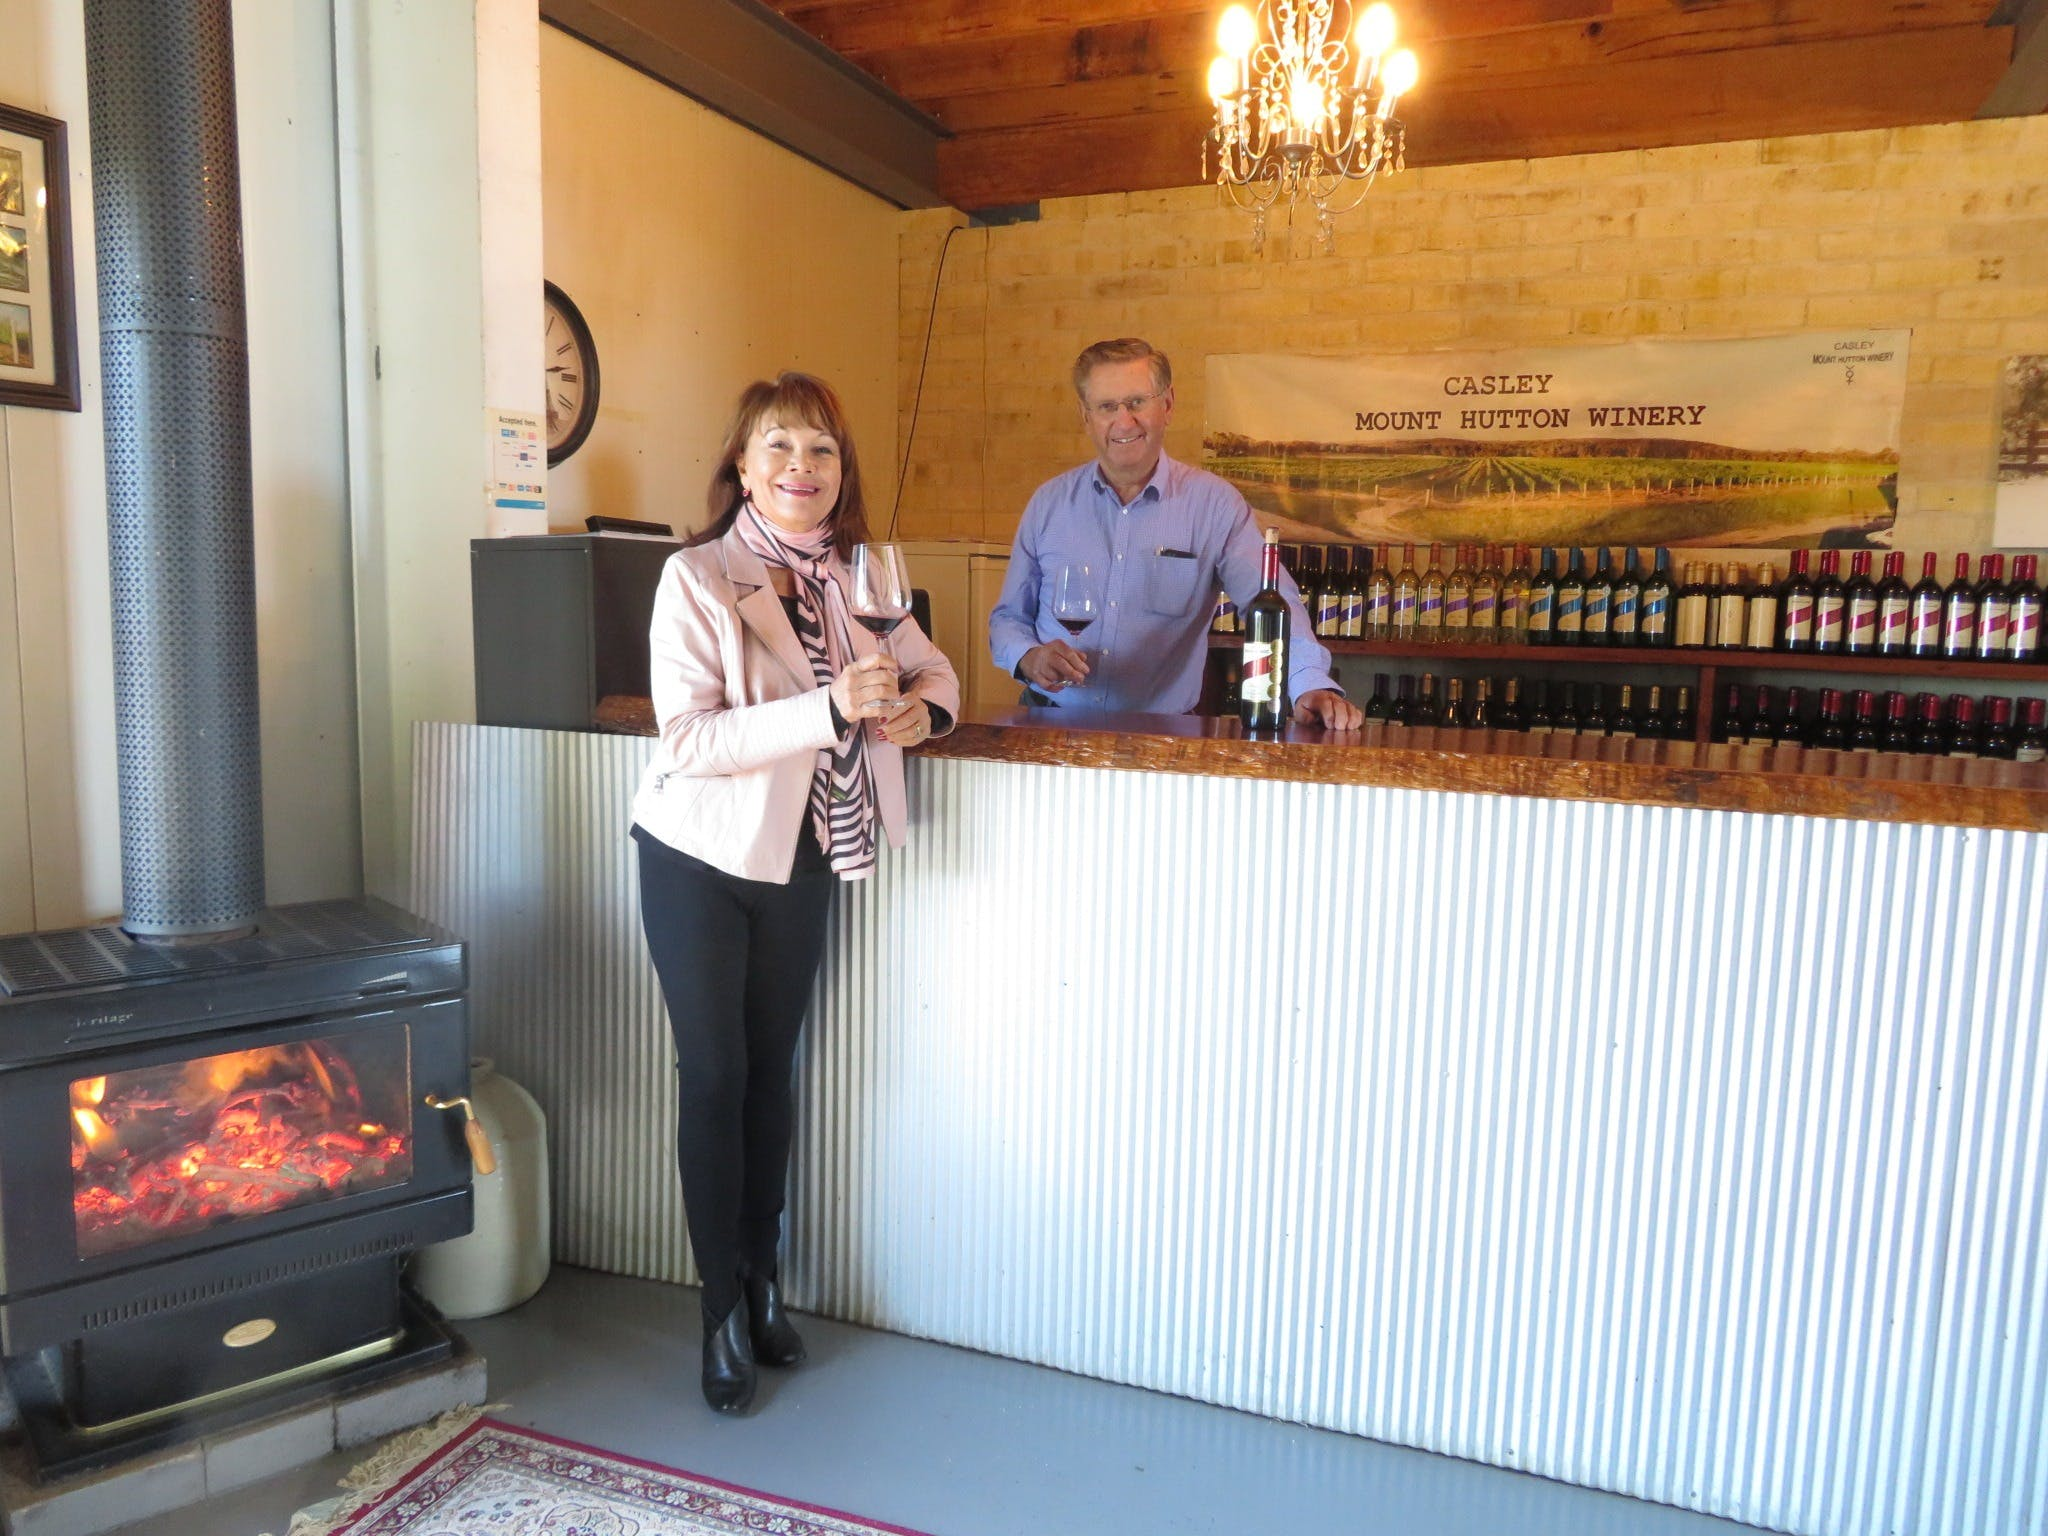 Sonya and Grant Casley at Cellar Door